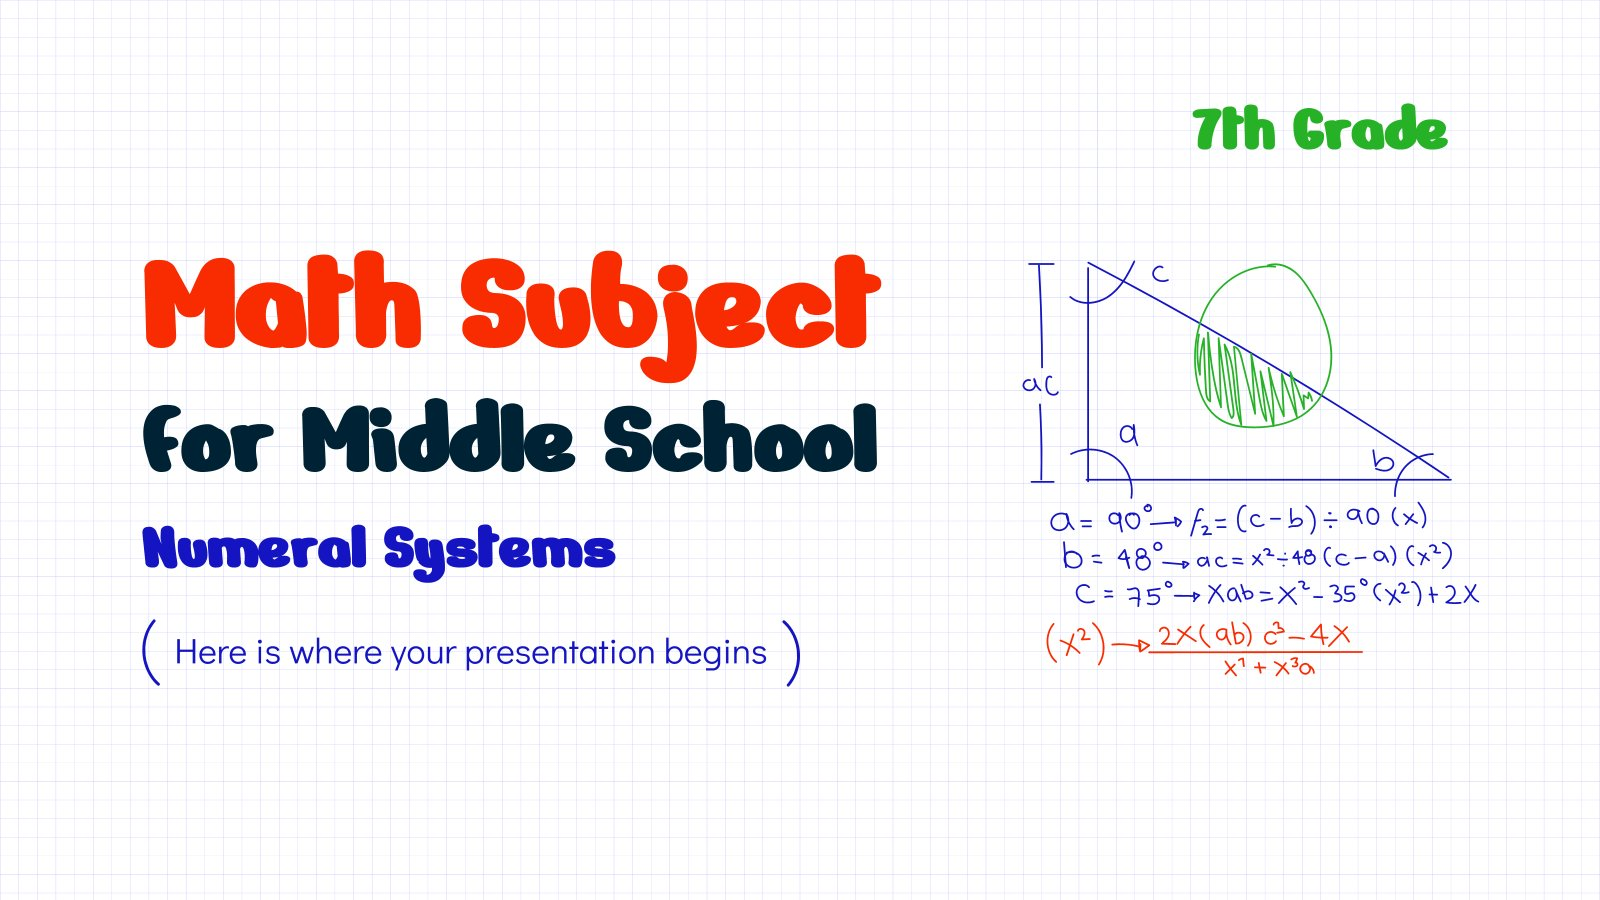 Math Subject for Middle School - 7th Grade: Numeral Systems presentation template